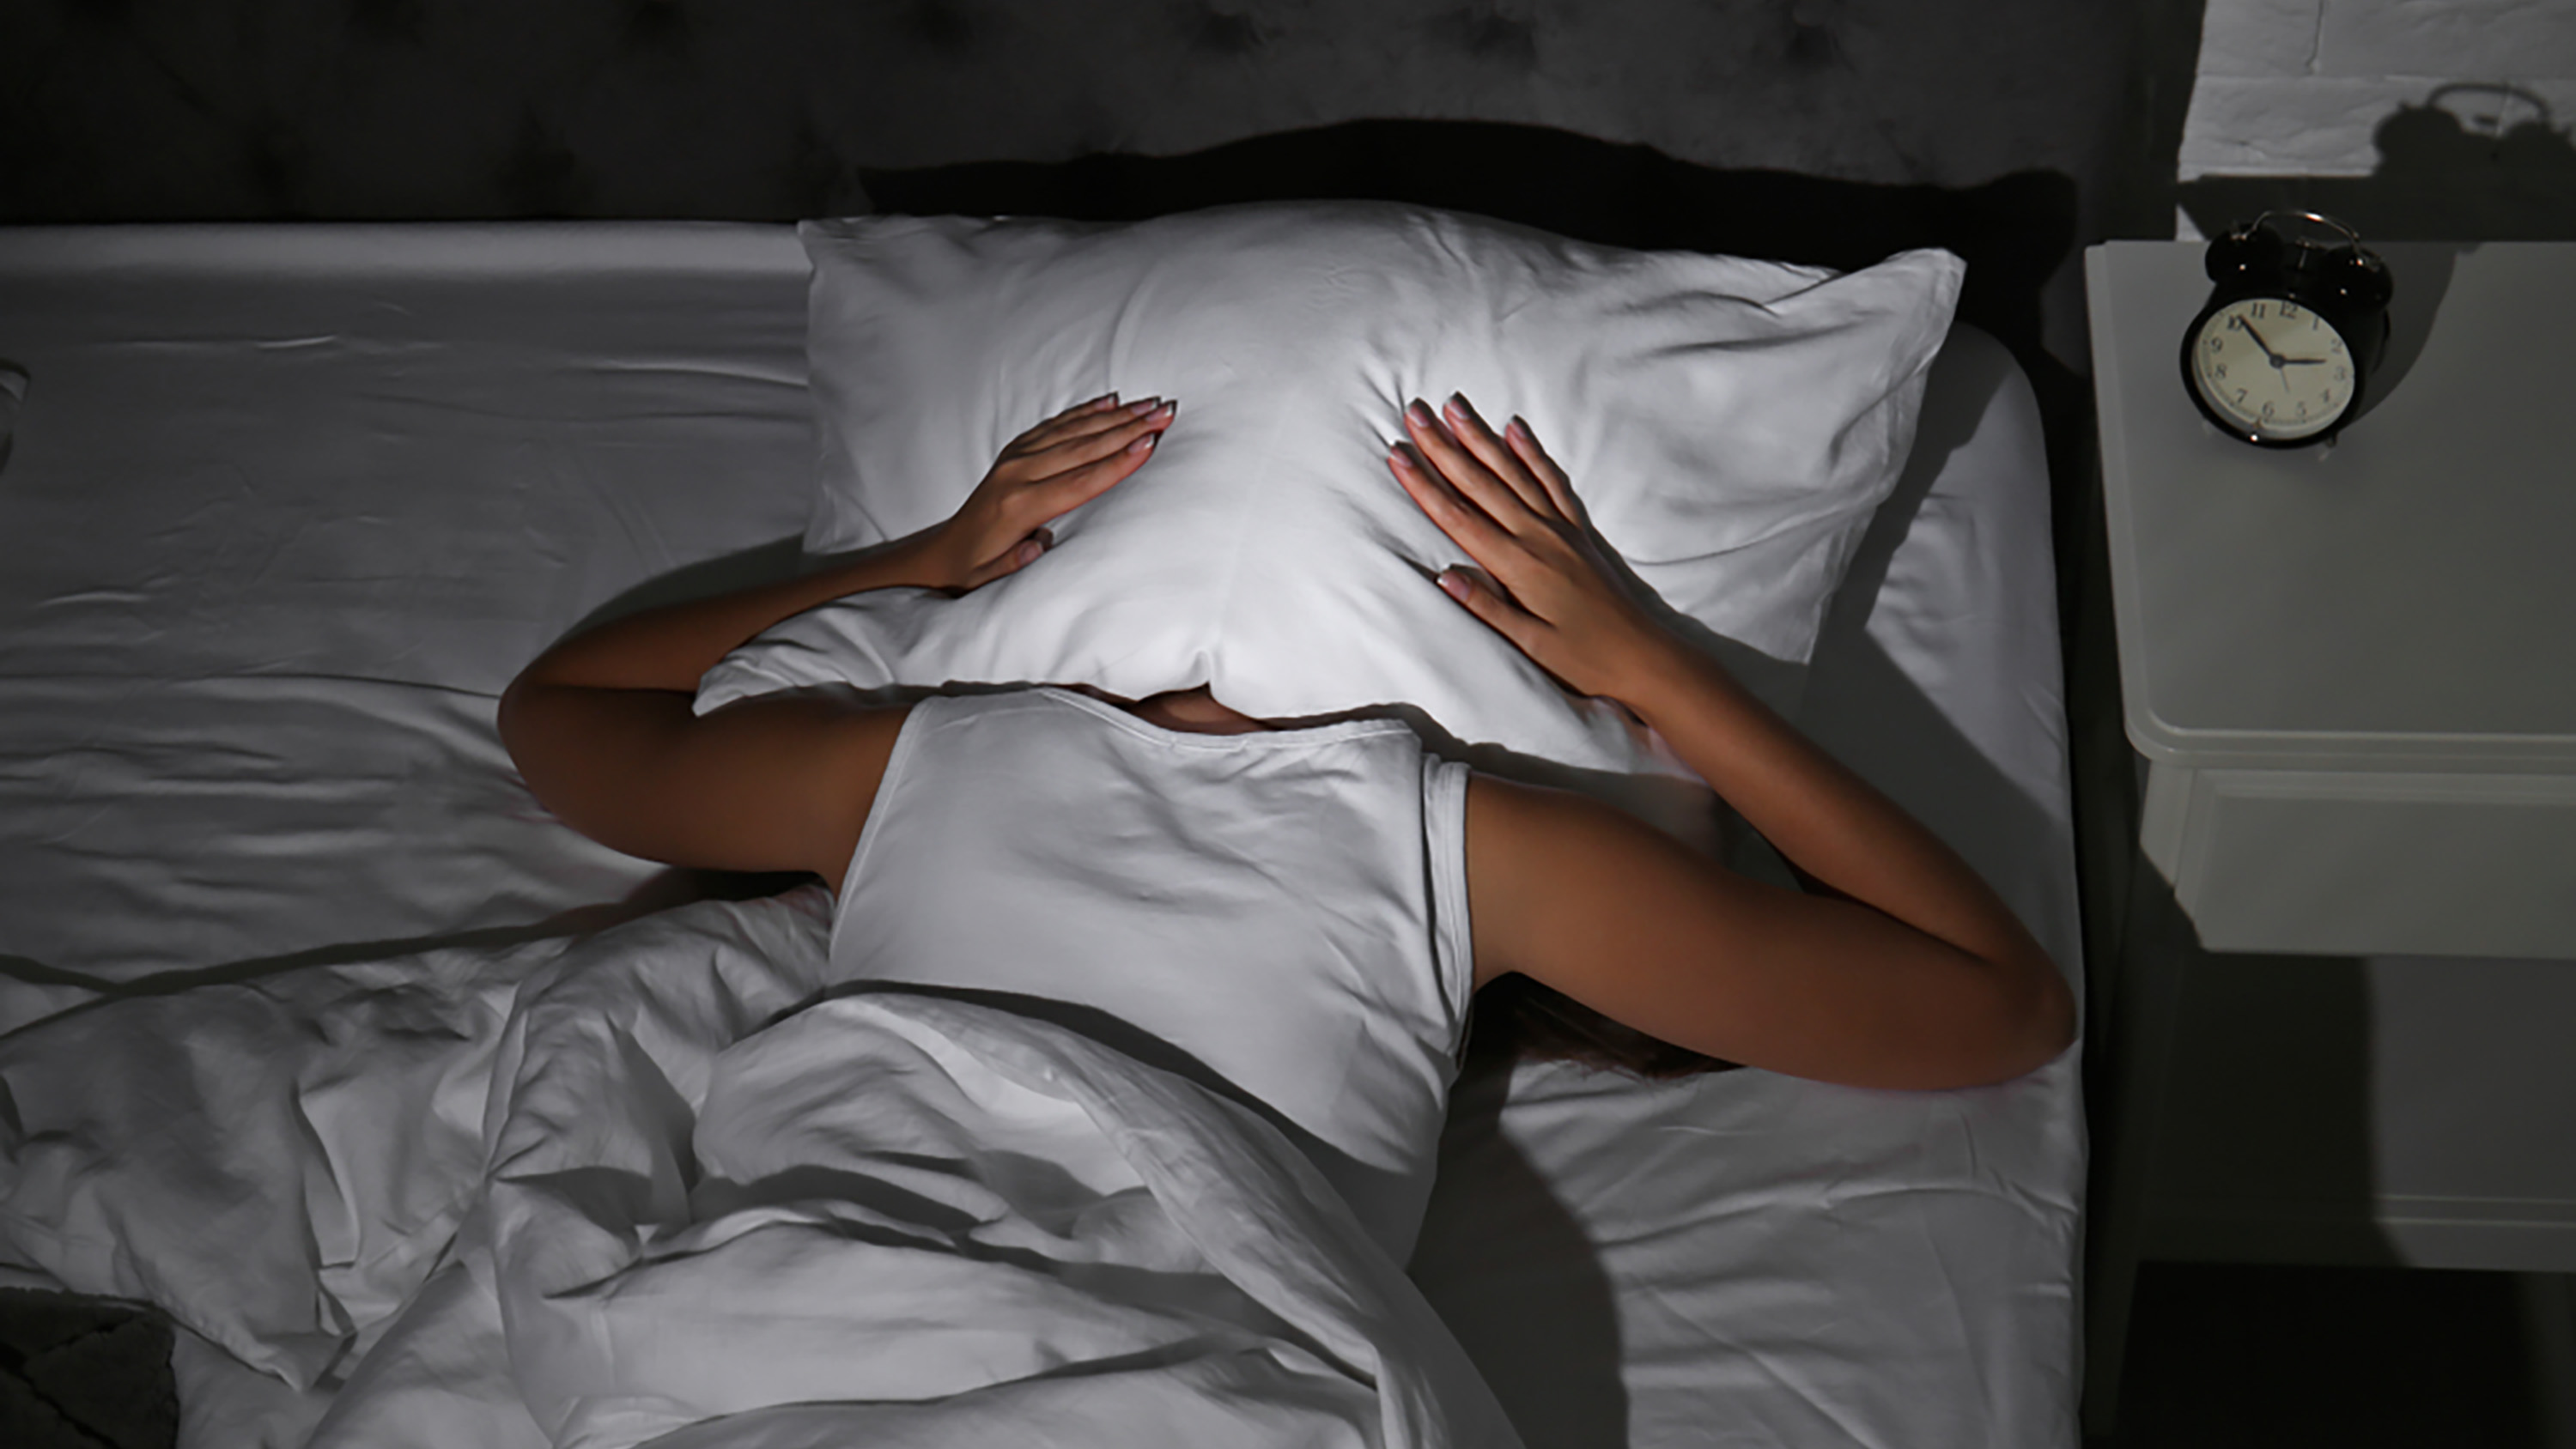 Less dream-stage REM sleep linked to higher risk of death, study says